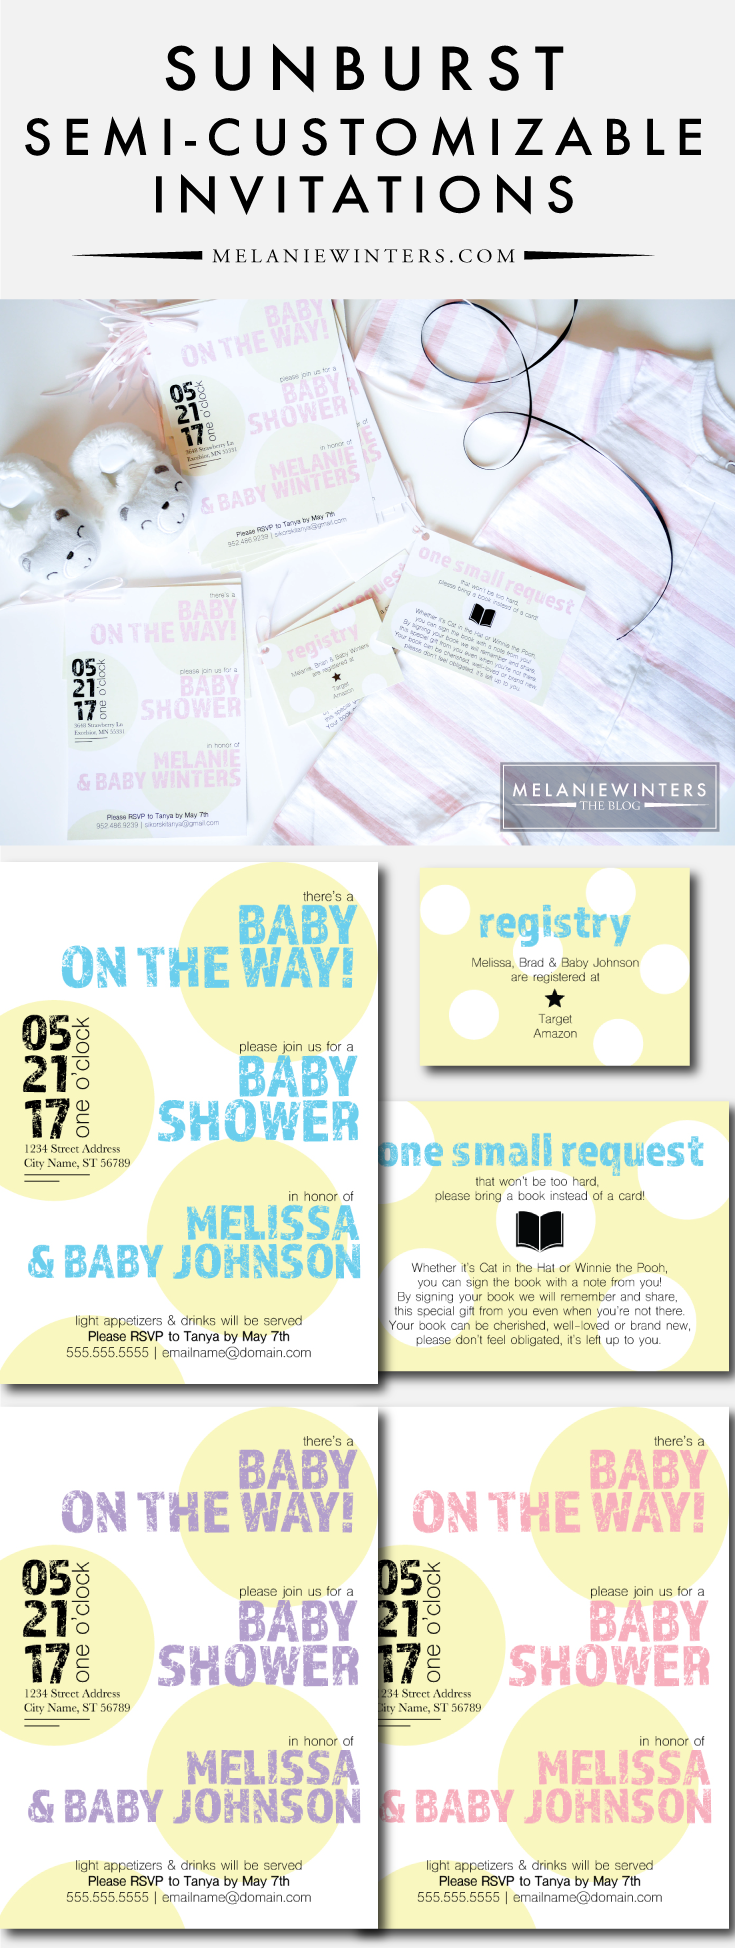 For the casual and fun-loving mom to be, these sunburst invitations are the perfect addition to an already perfect reason to celebrate! Easily customize and print your own set at melaniewinters.com/products.